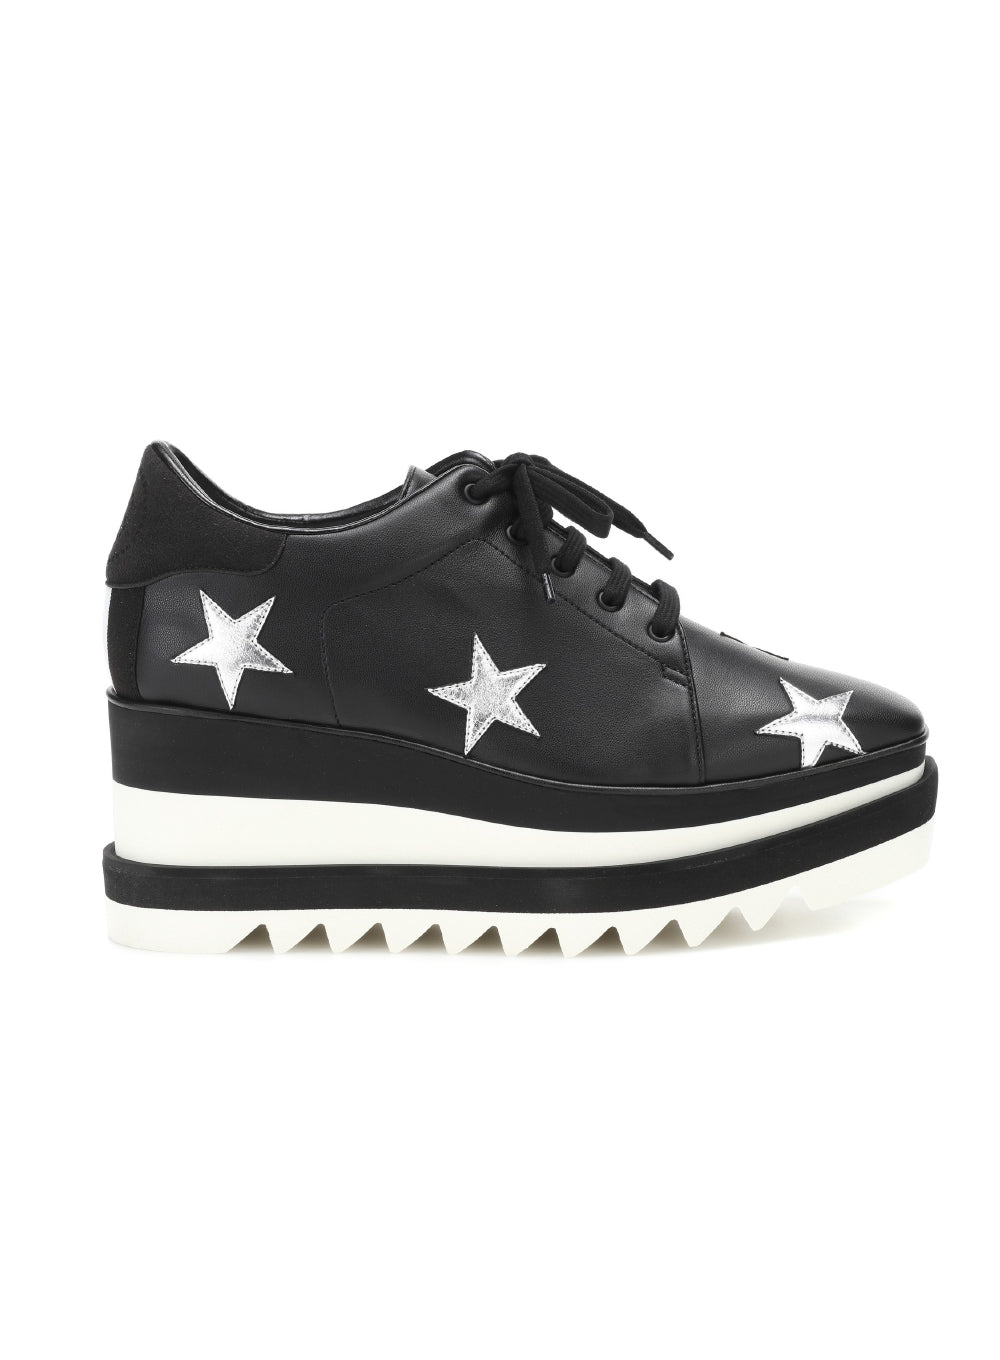 STELLA MCCARTNEY | Elyse Star Platform Sneakers